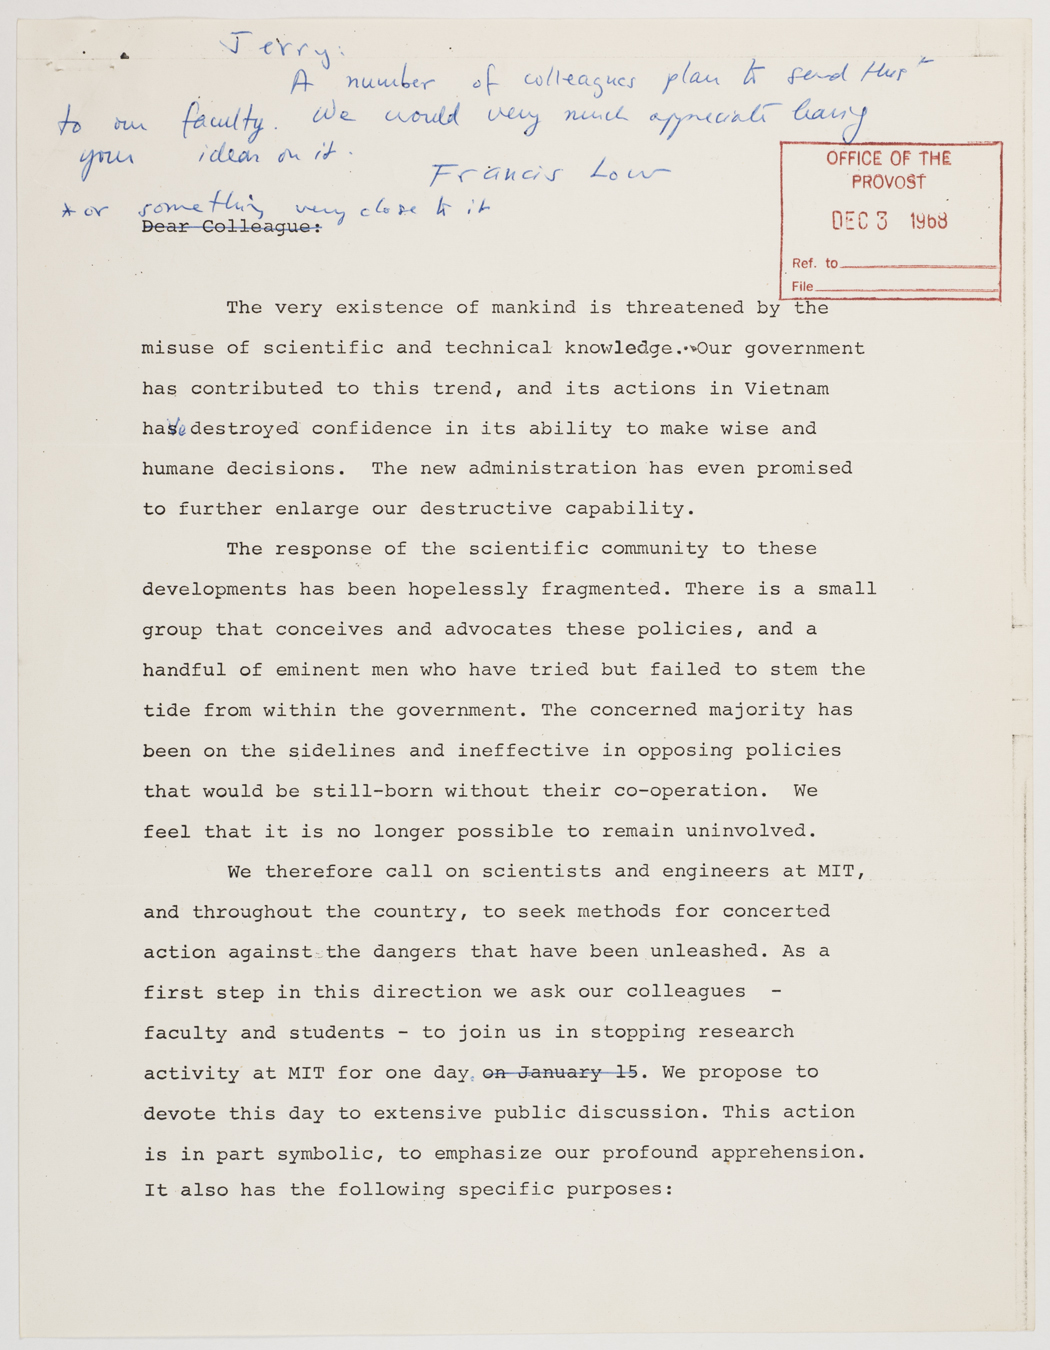 Draft of letter to Jerome Wiesner with handwritten note from Francis Low, 1968 December, AC-0008, Box 98.